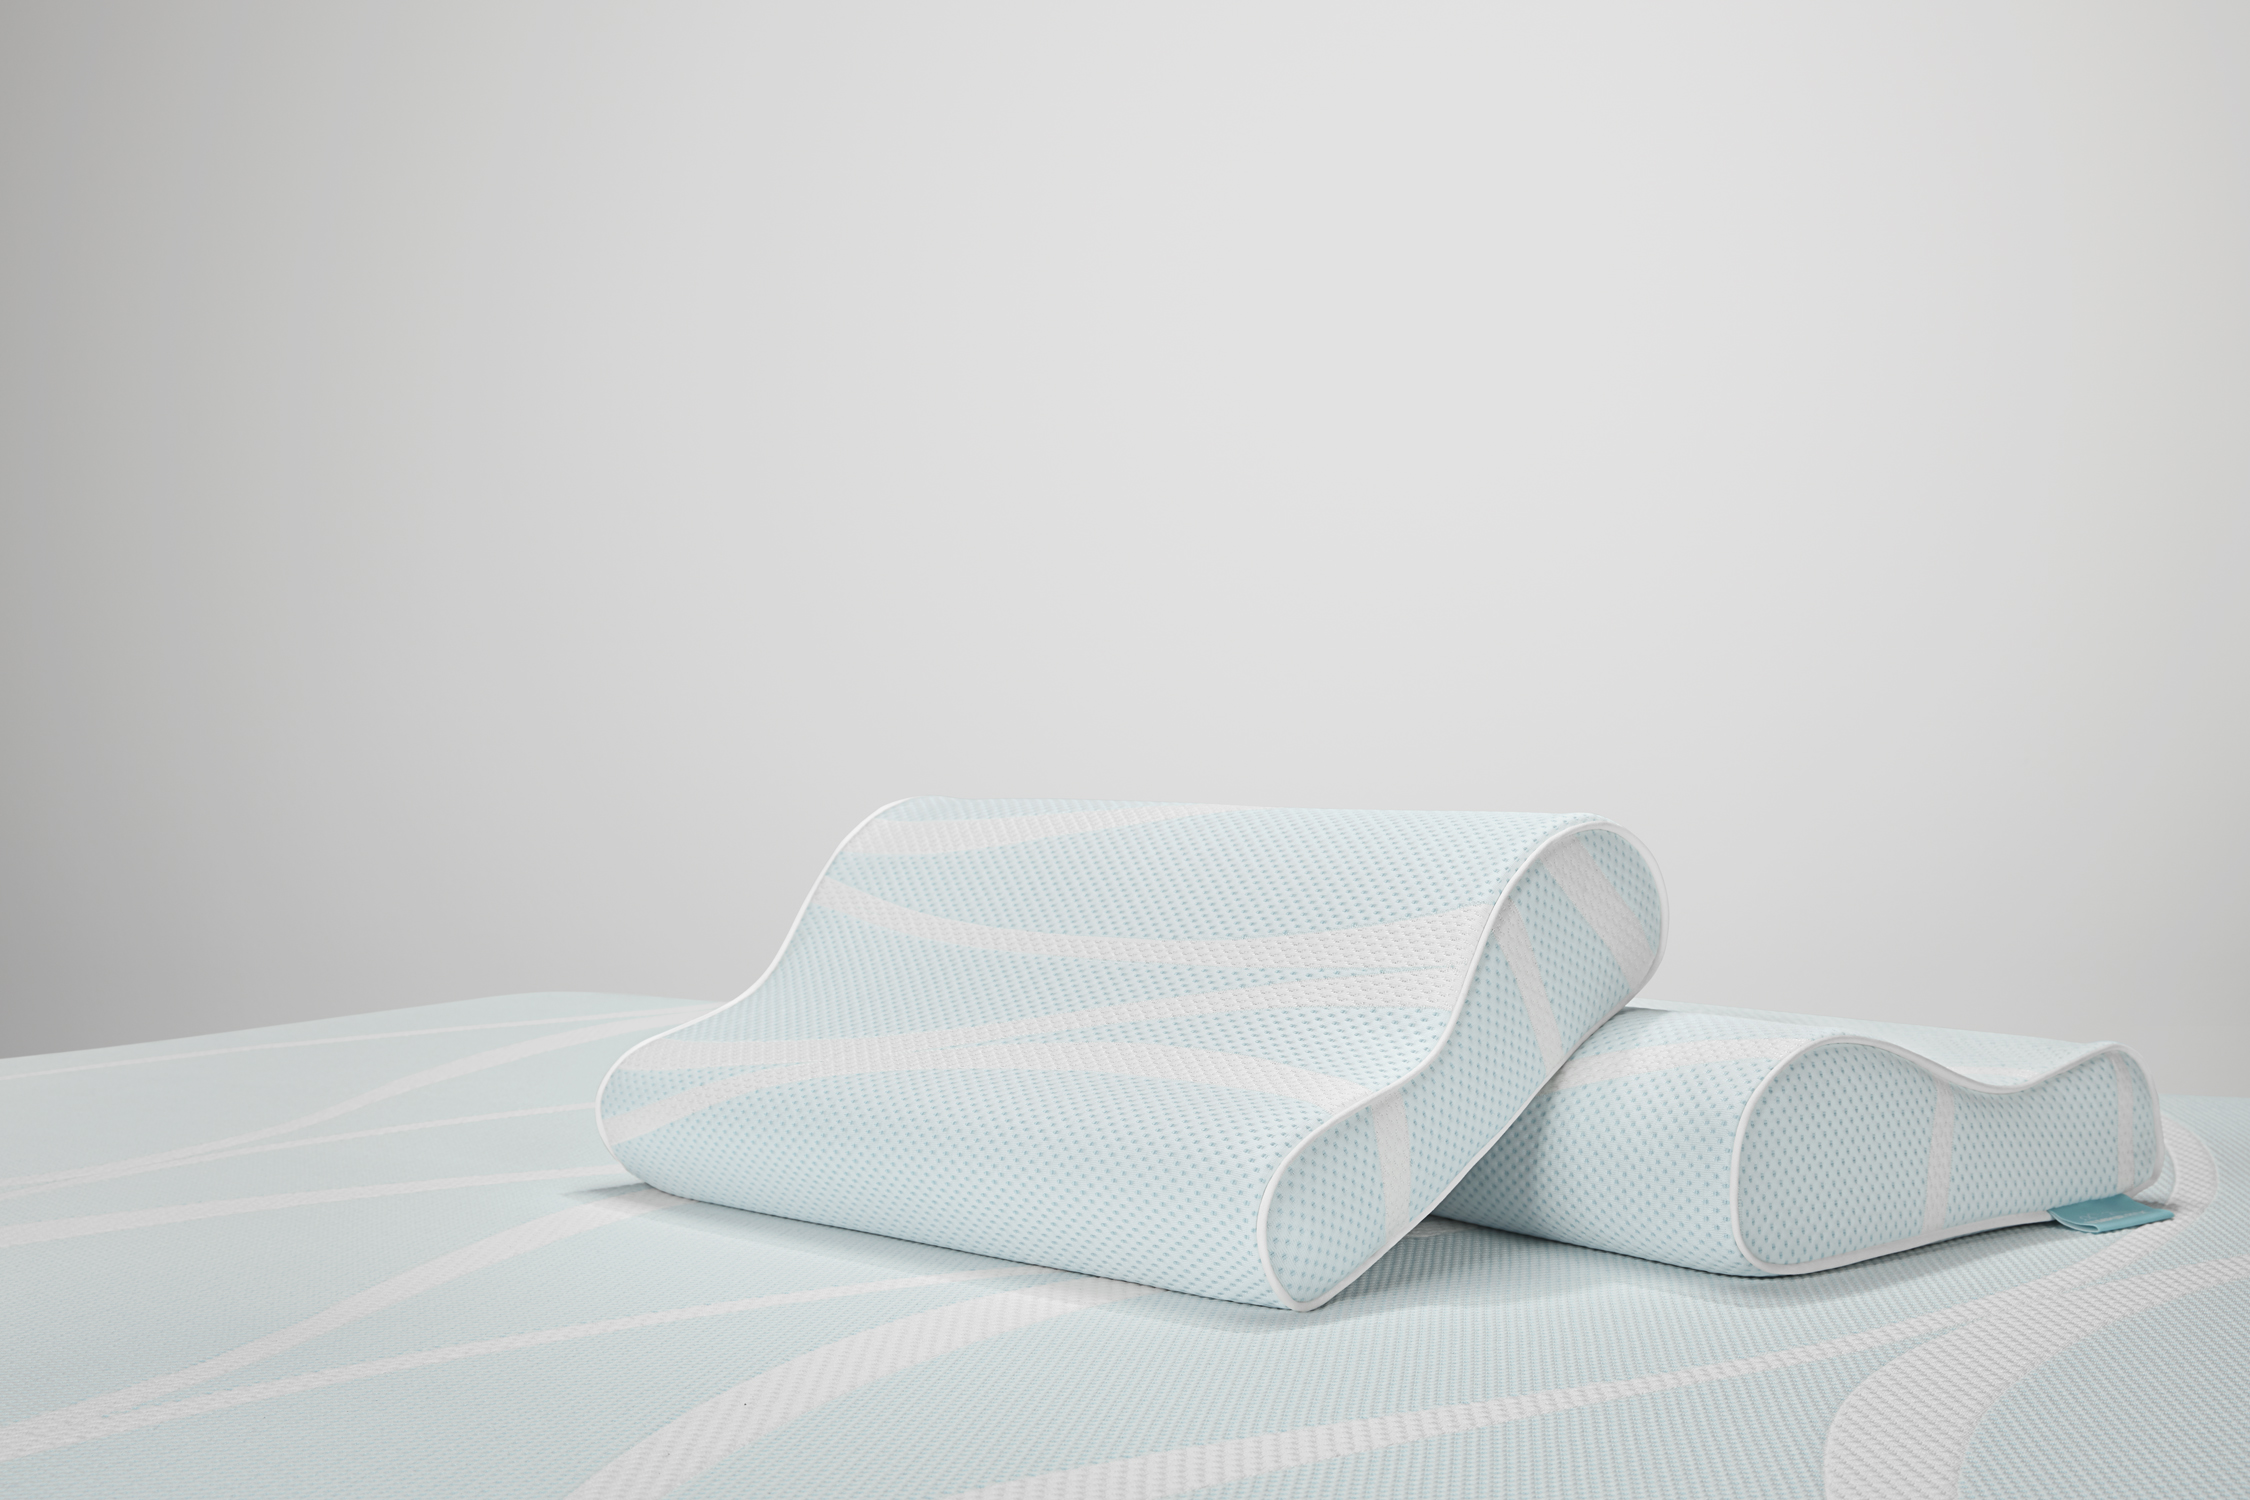 tempur breeze neck advanced cooling pillow by tempur pedic the back store sleep well we ve got your back